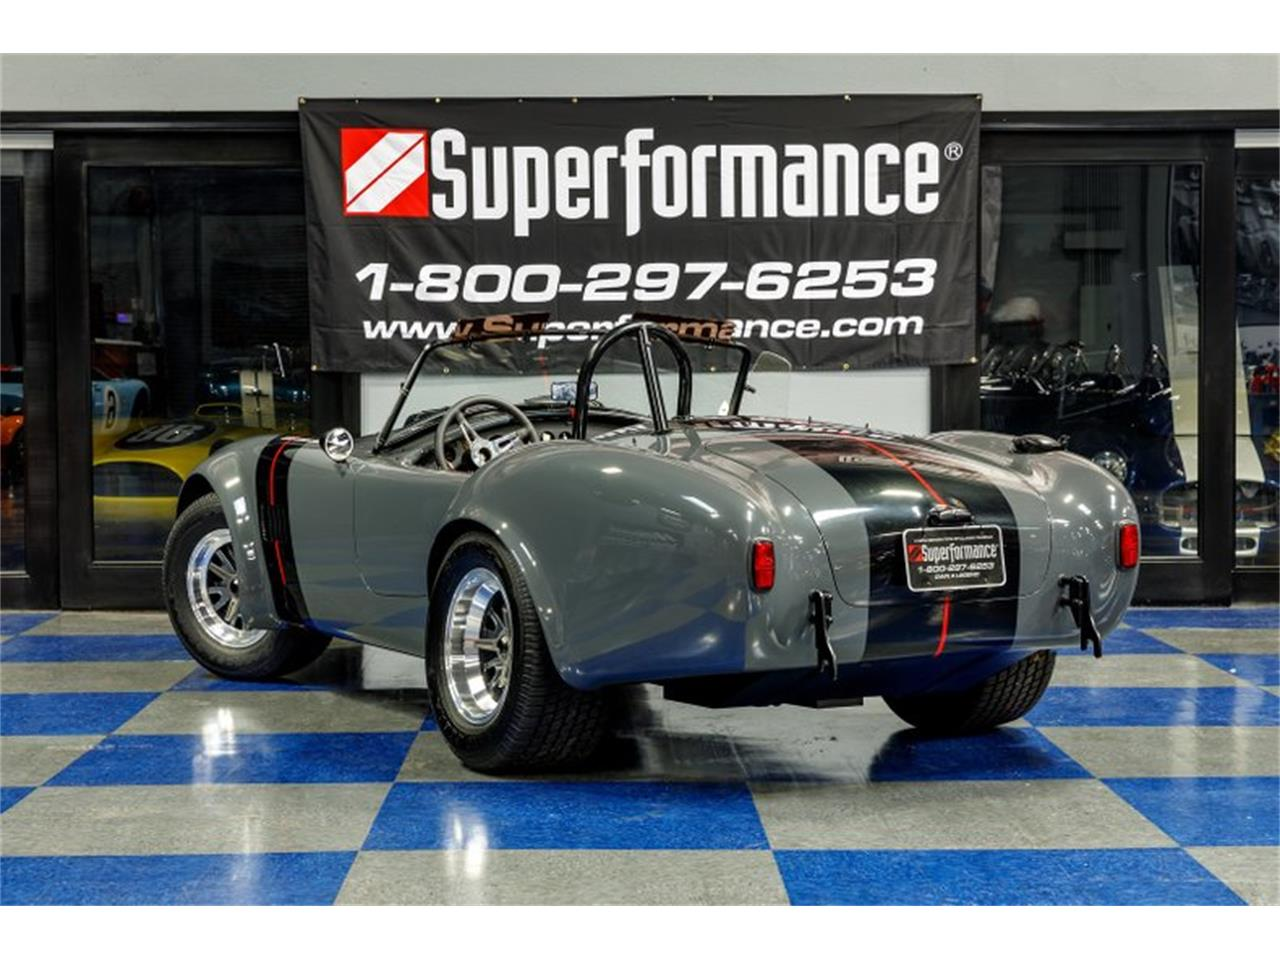 1900 Superformance MKIII (CC-1197355) for sale in Irvine, California